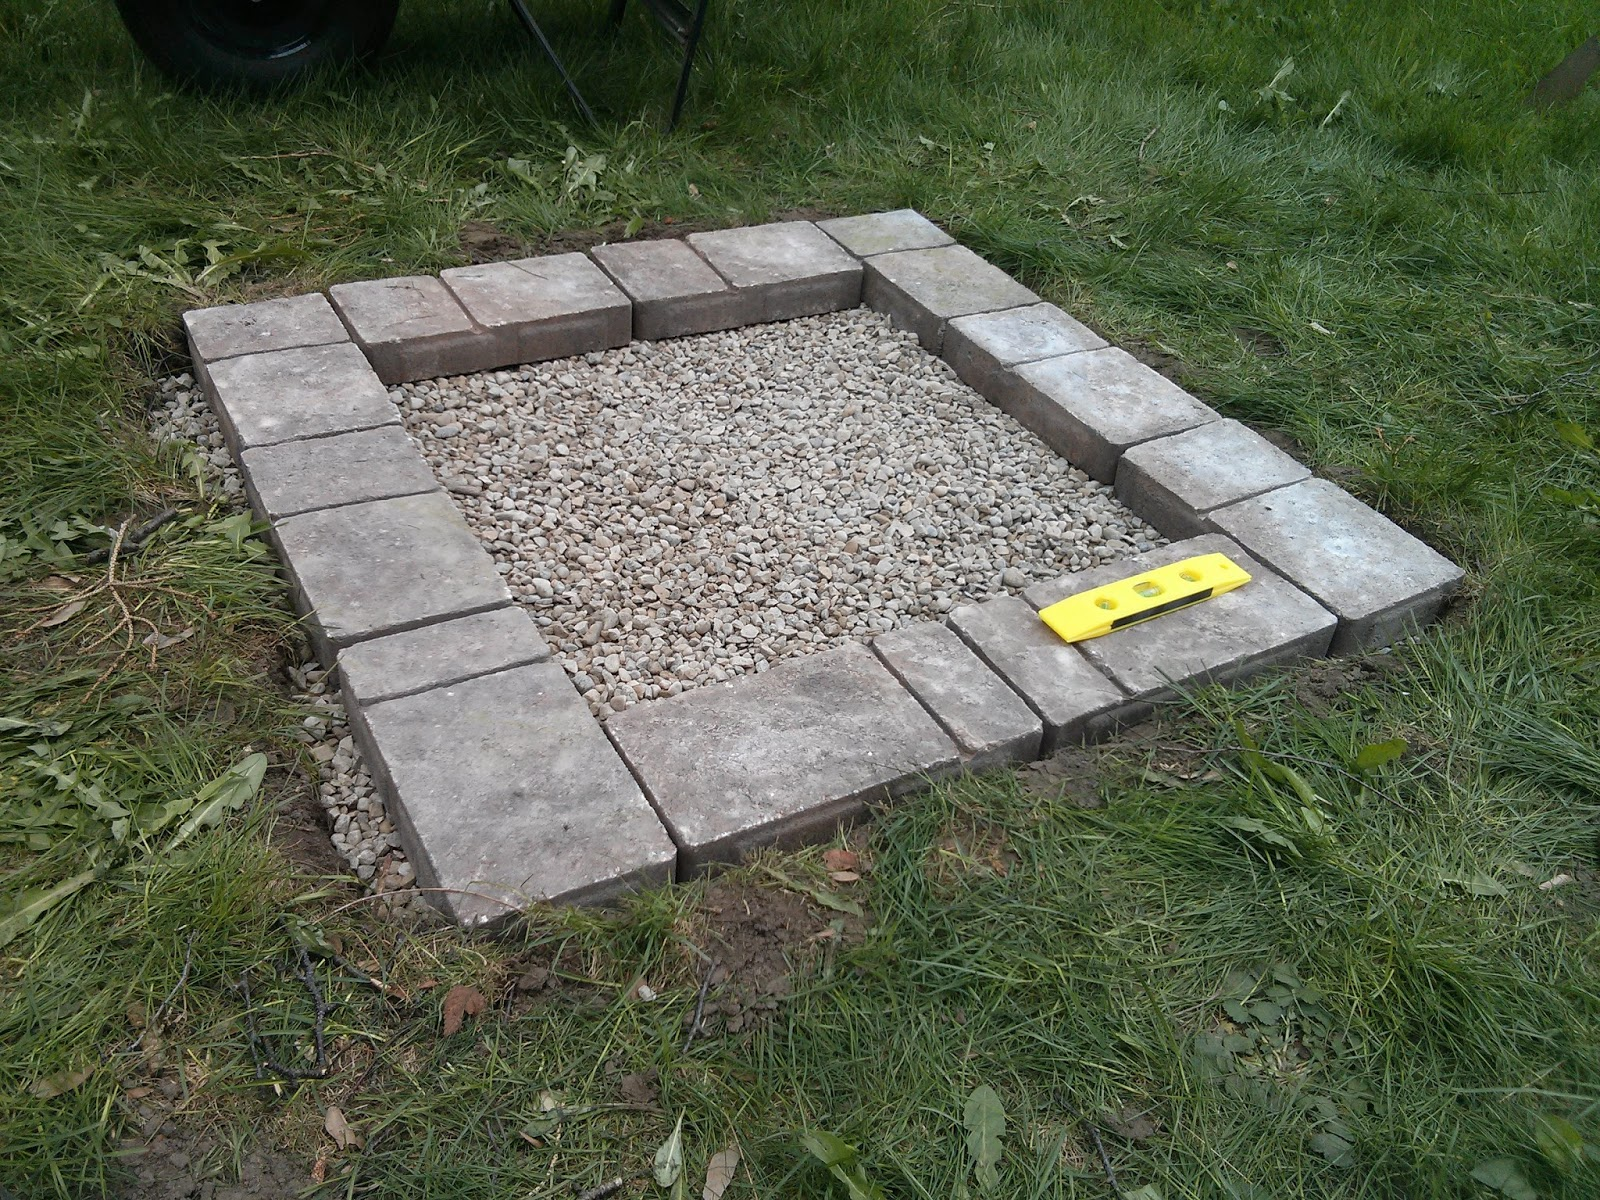 Divinely gifted mothers day diy fire pit for How to build a fire pit with concrete blocks